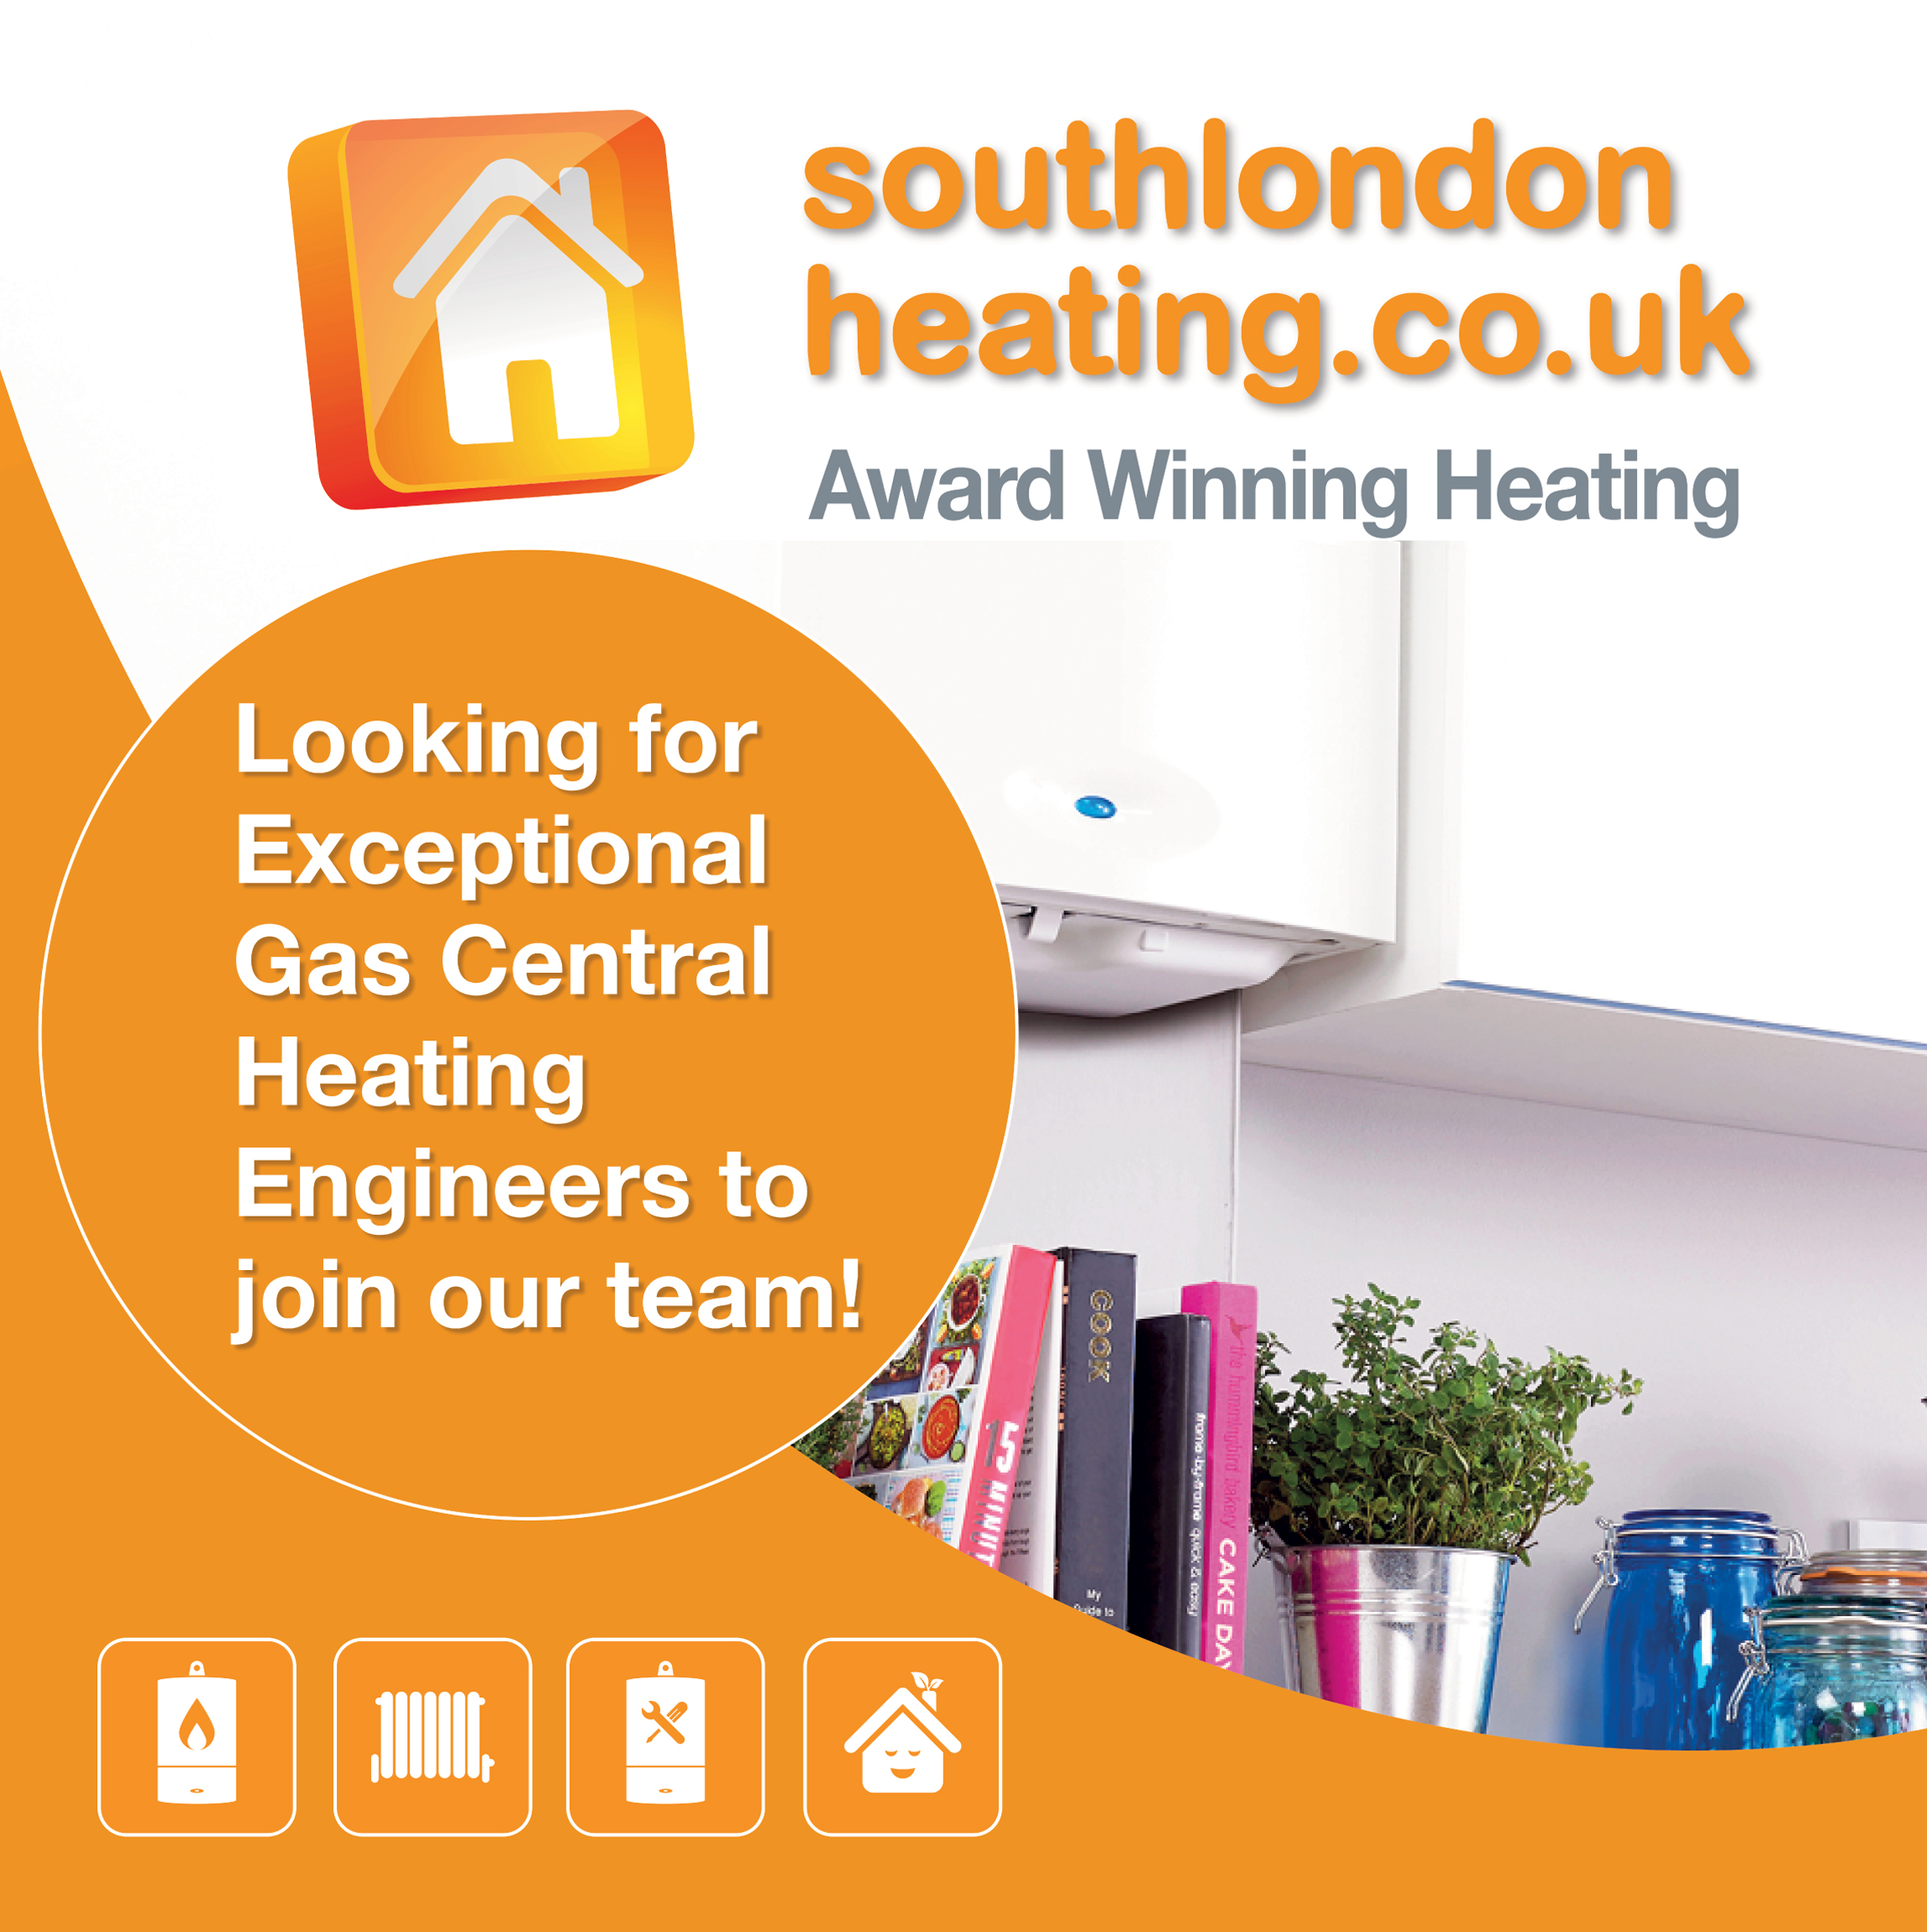 Looking for Exceptional Gas Central Heating Engineers to join our team